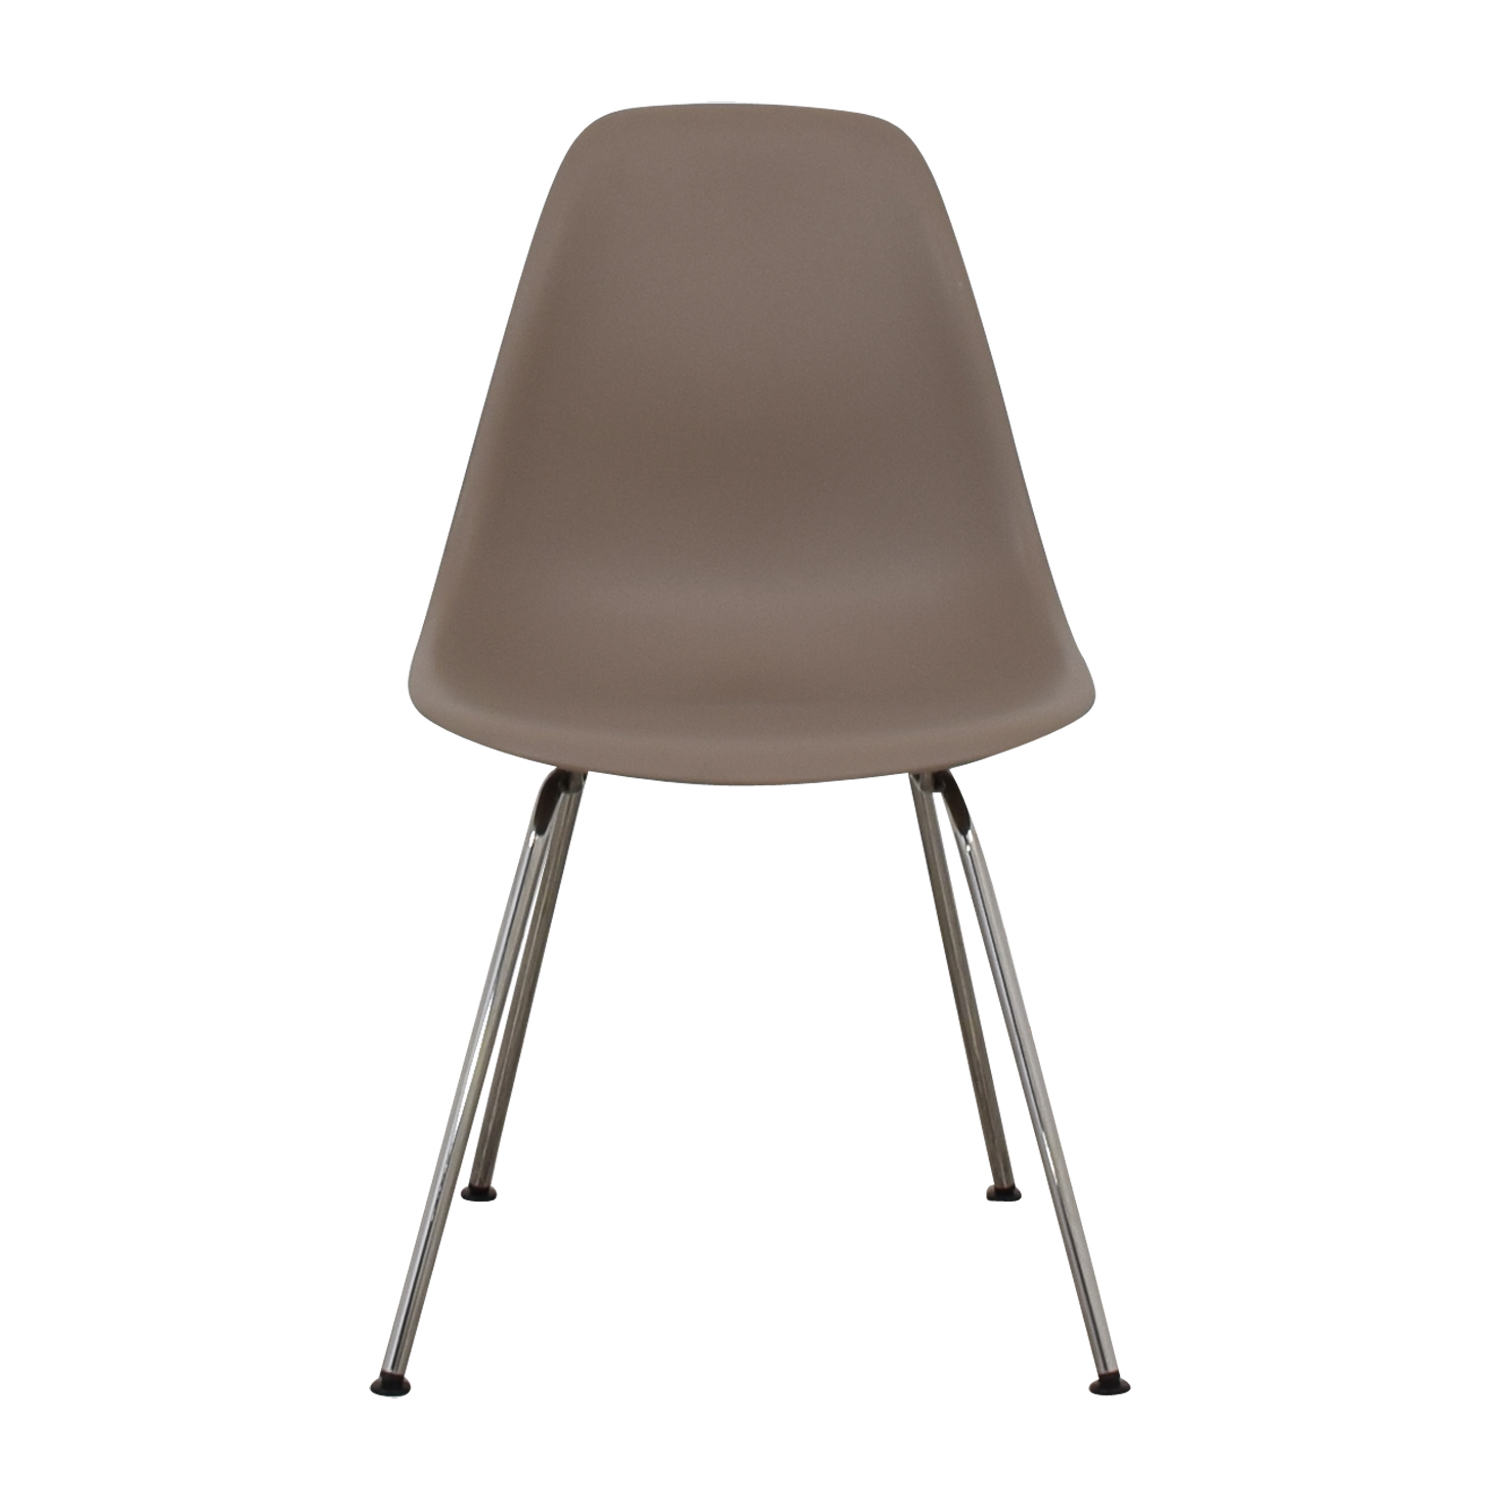 Herman Miller Herman Miller Eames Molded Side Chair second hand